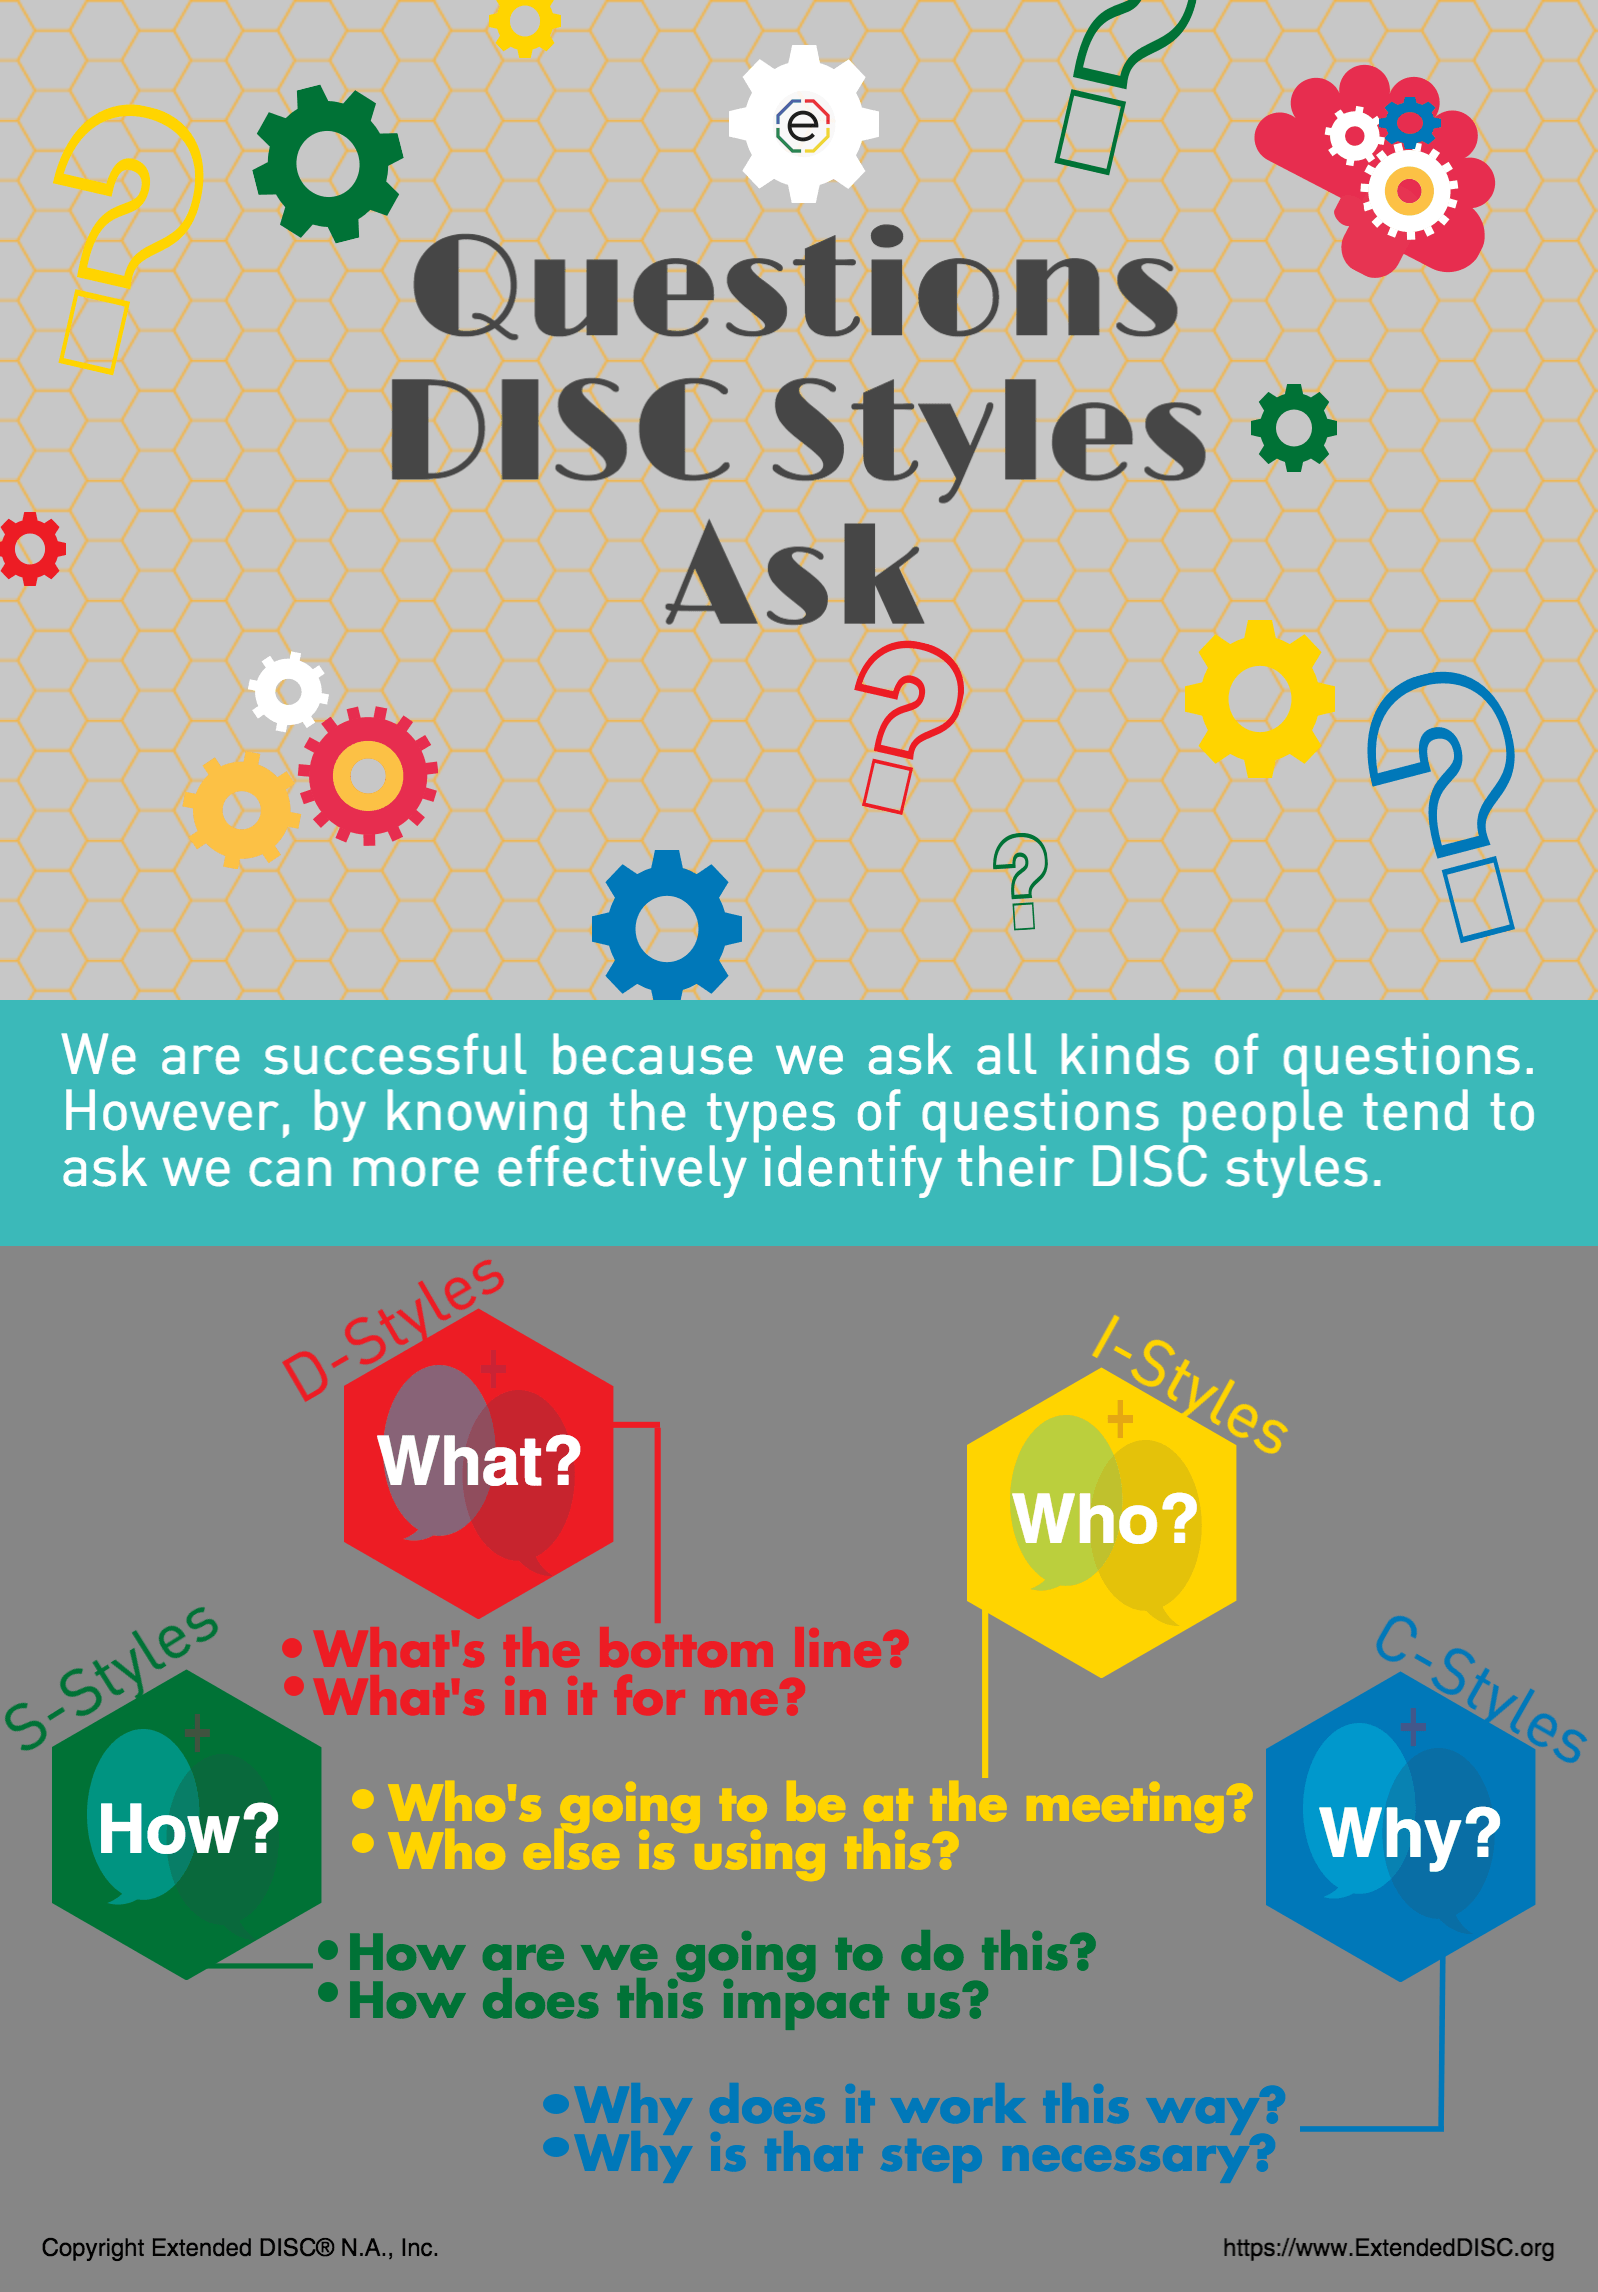 Questions DISC Profiles Ask